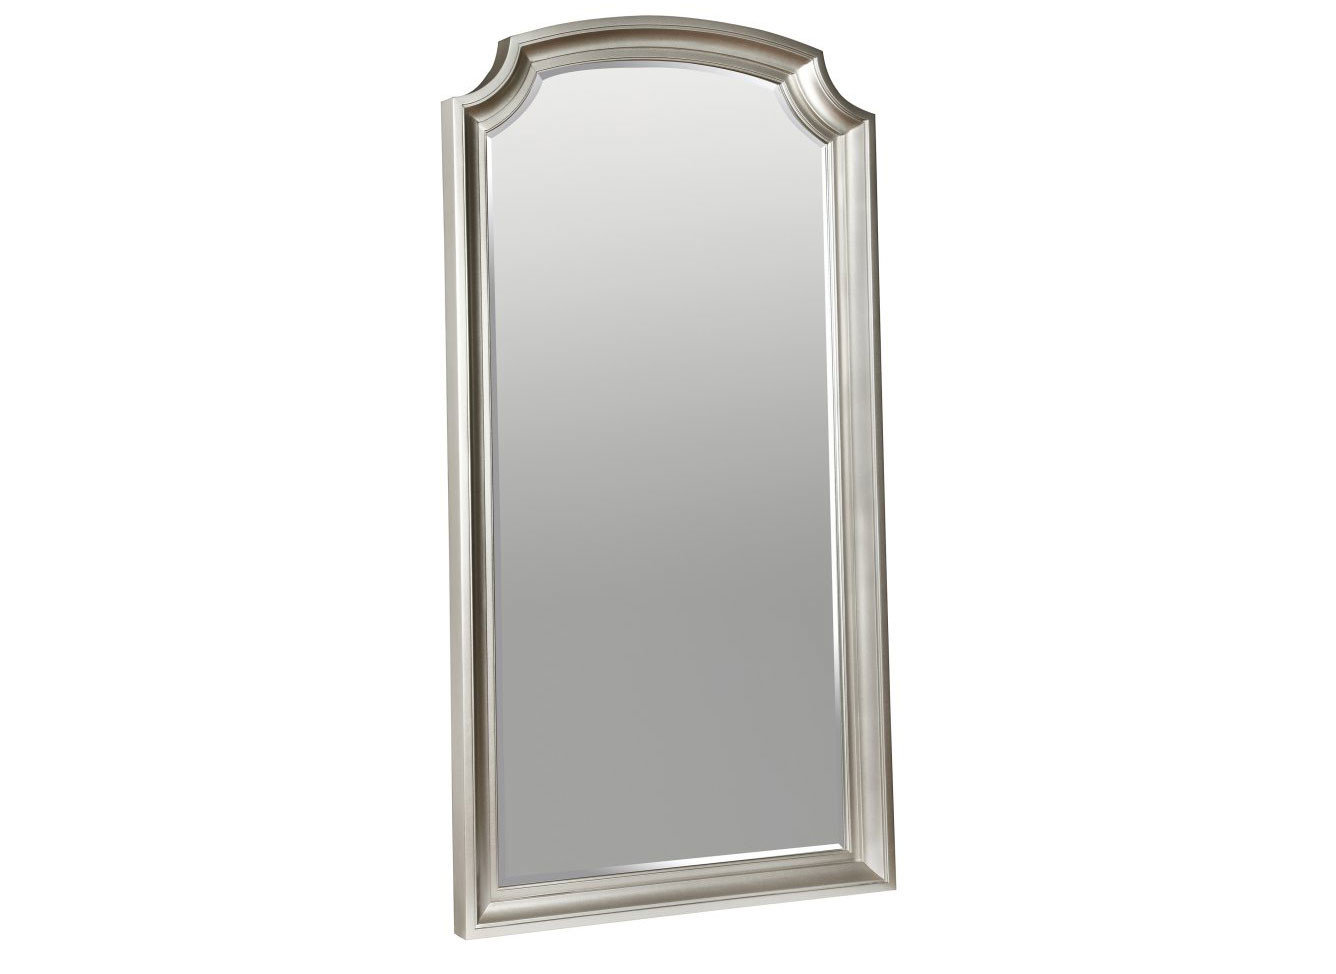 Style + Design Travel Shop indoor bathroom mirror product design angle rectangle